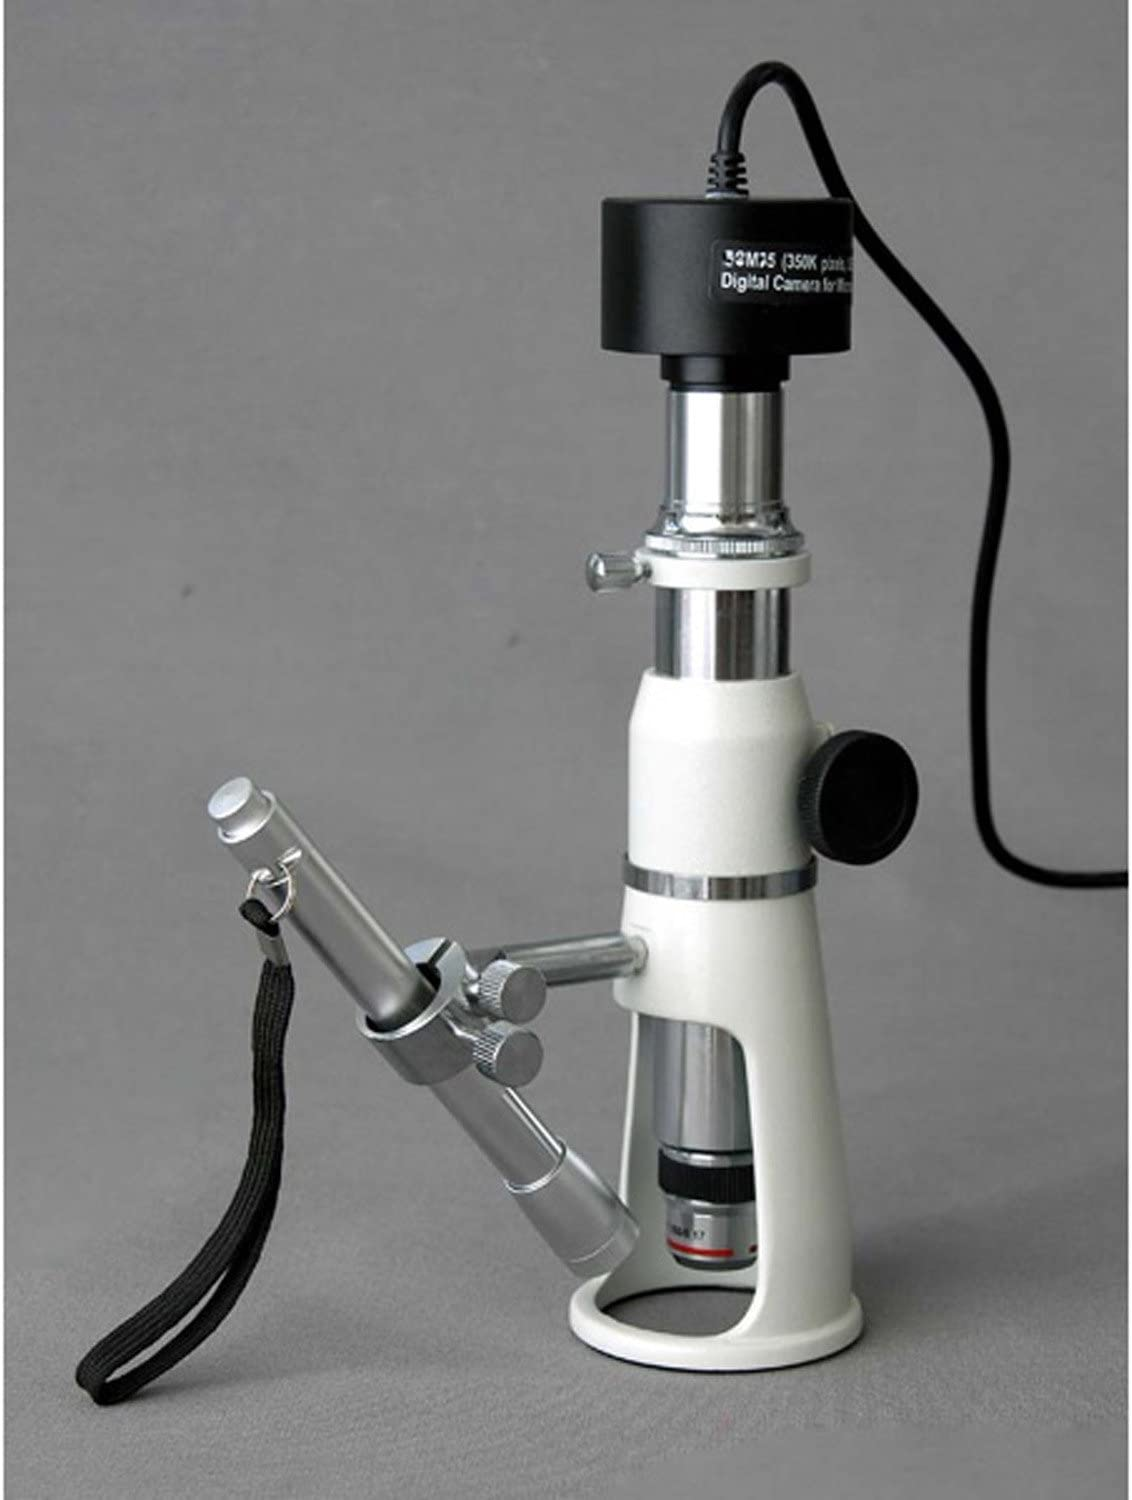 Includes Pen Light 20x and 50x Magnification 17mm Field of View AmScope H250 Handheld Stand Measuring Microscope